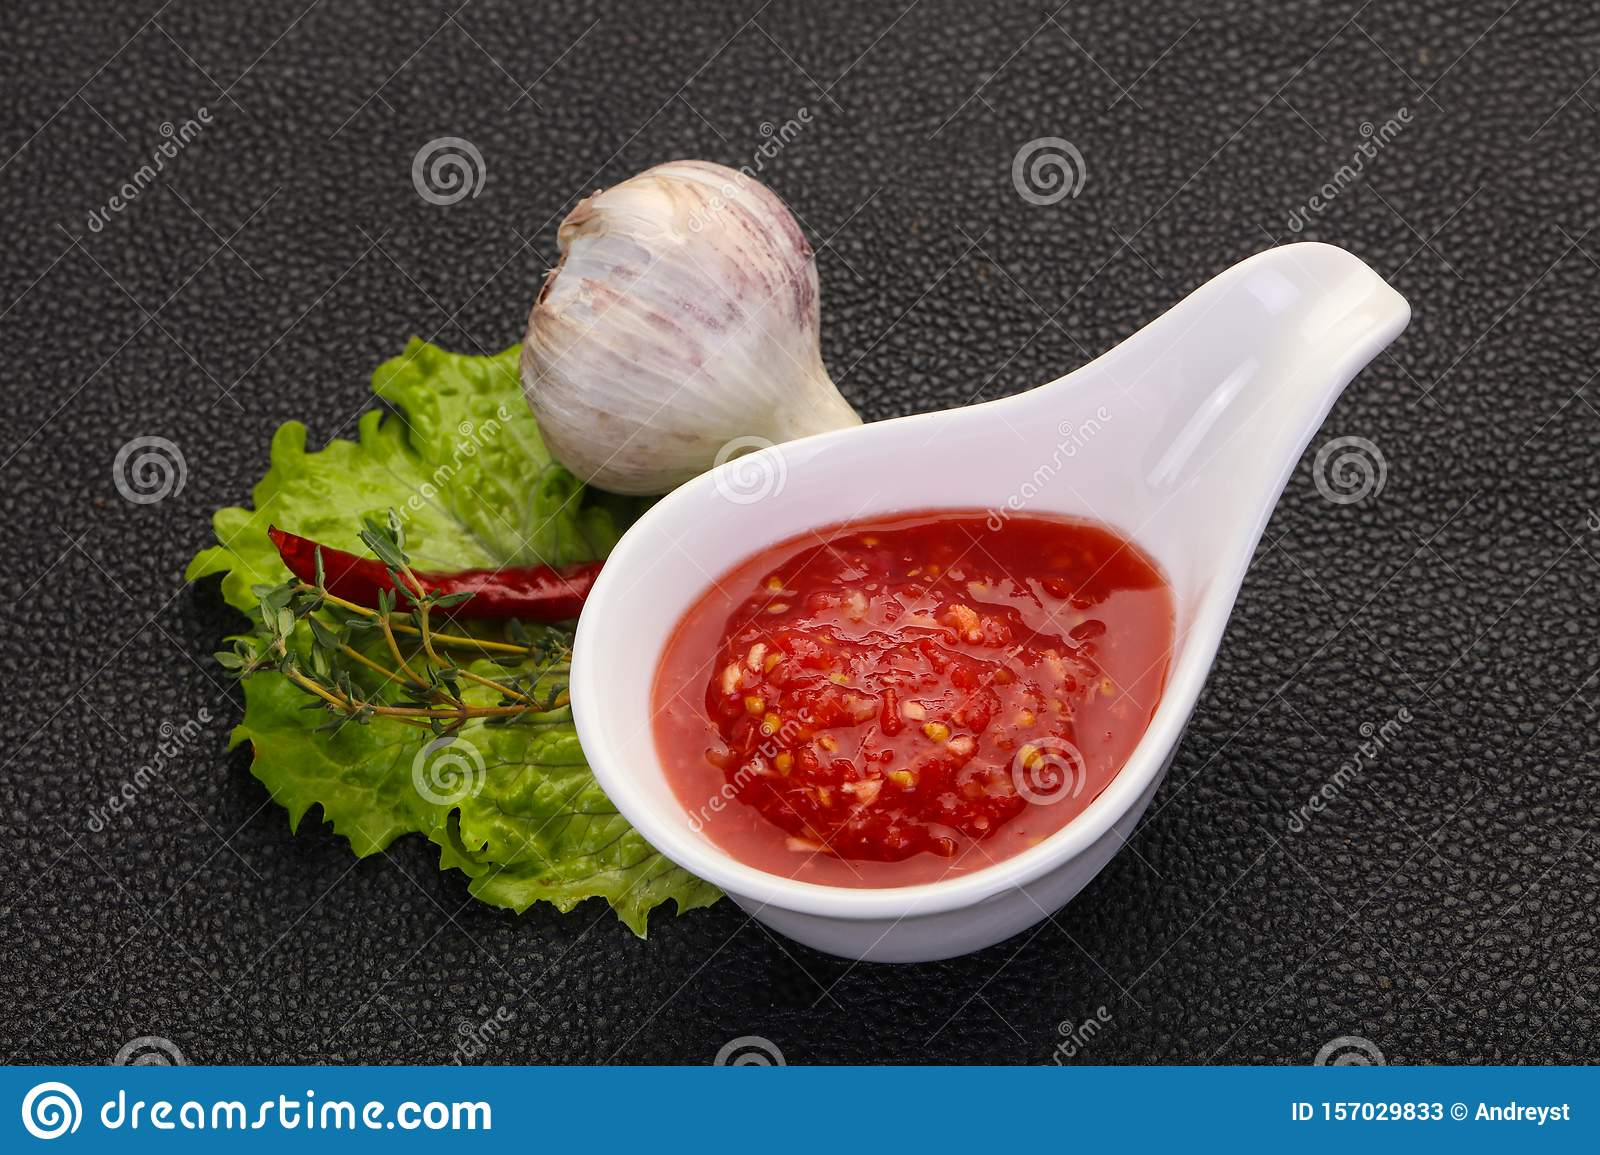 Spicy tomato and garlic sauce